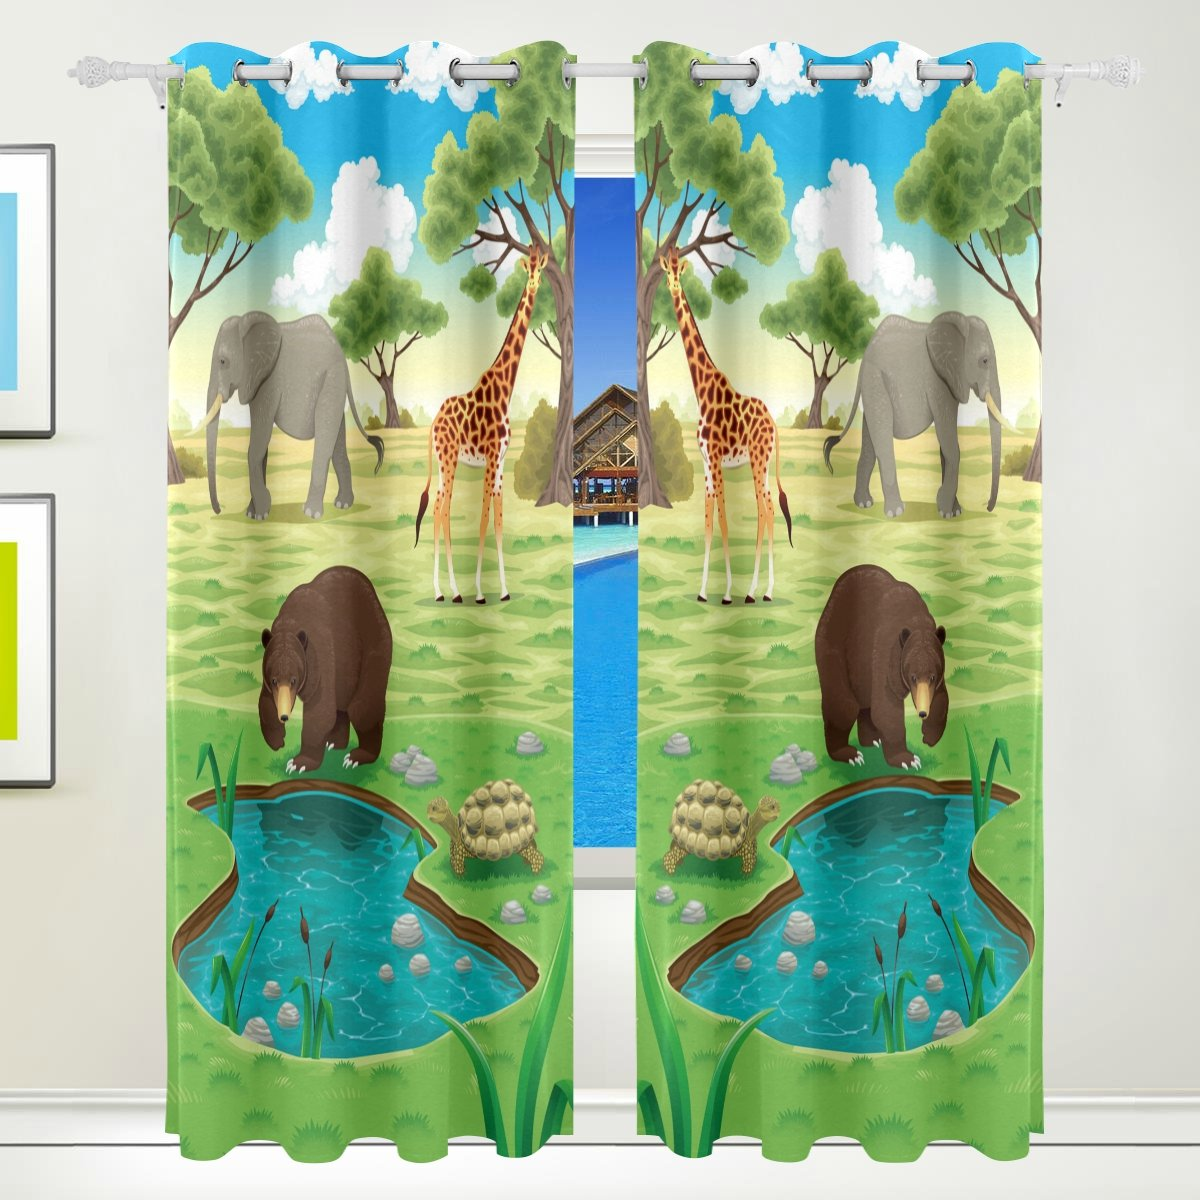 Vantaso Window Curtains 84 Inch Long Forest Animals Bear Elephant Giraffe for Kids Girls Boys Bedroom Living Room Light Shading Polyester 2 Pannels by Vantaso